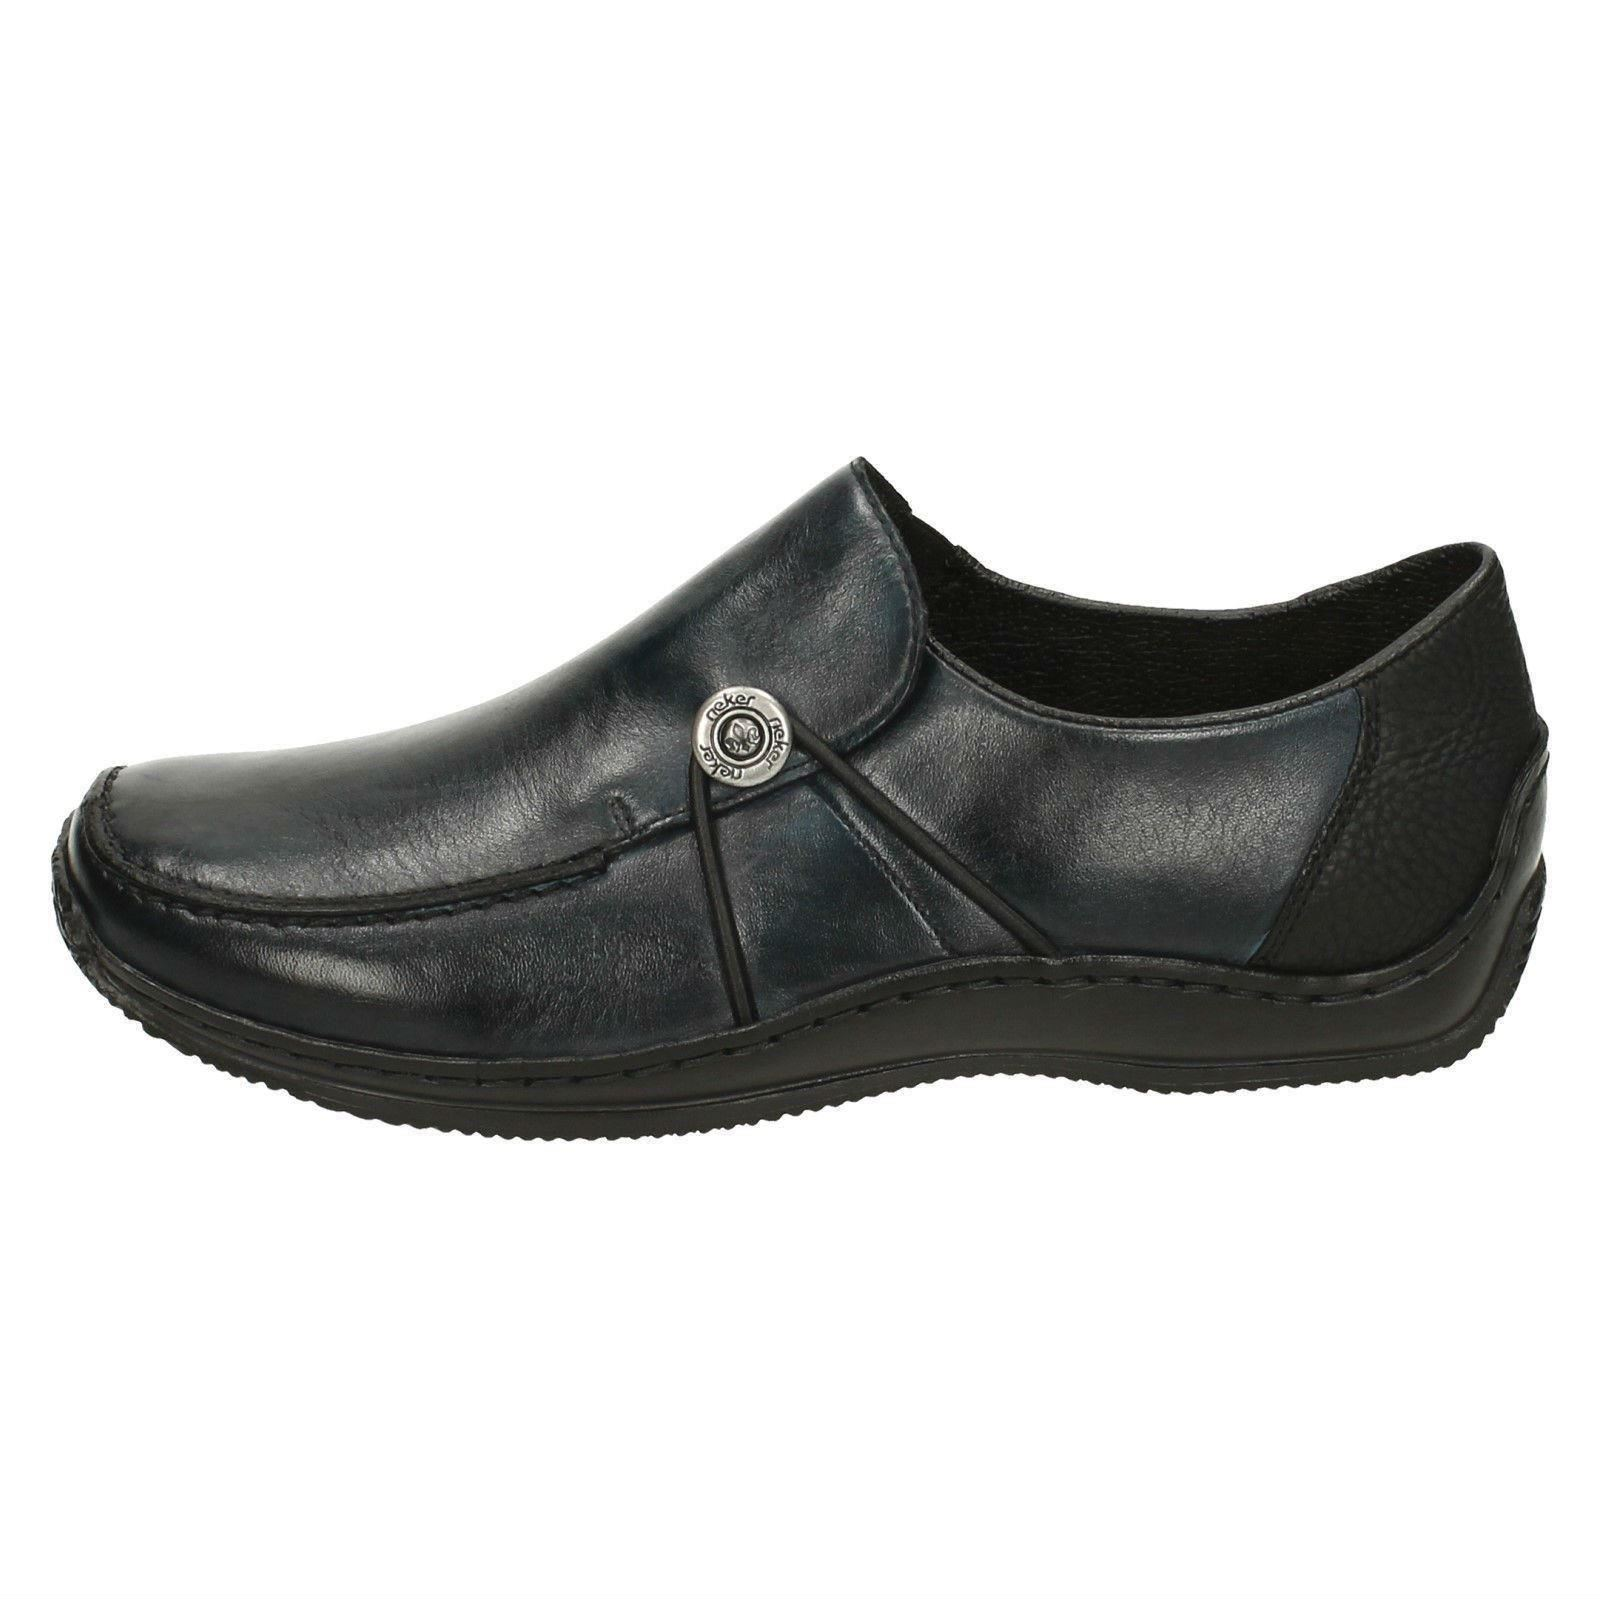 Rieker Rieker Rieker Ladies Casual Flats With Button Detail 'L1781' 21ef2e